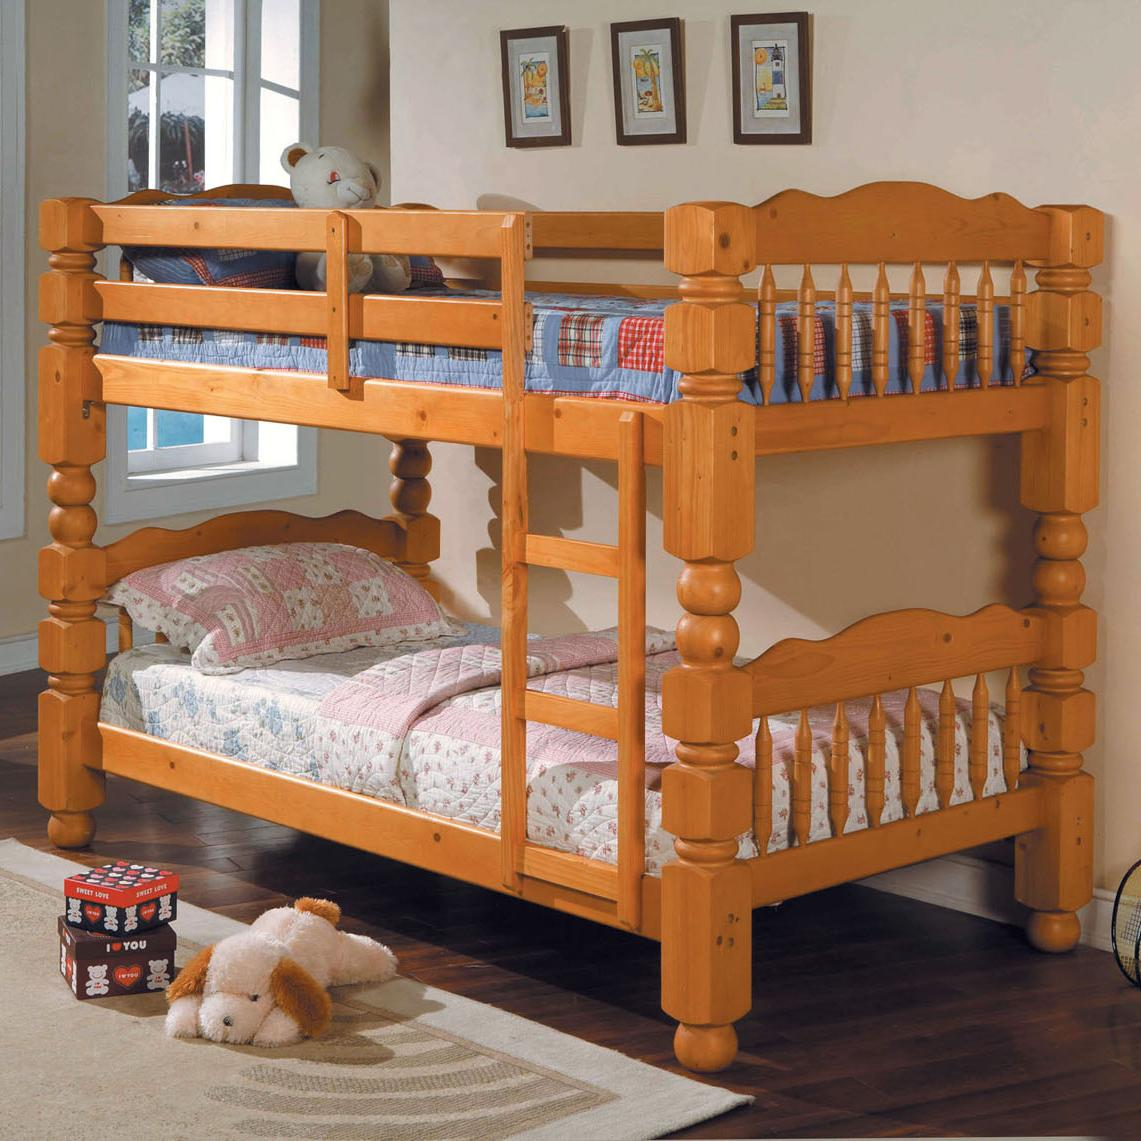 Acme Furniture Benji Twin Bunkbed - Item Number: 02575